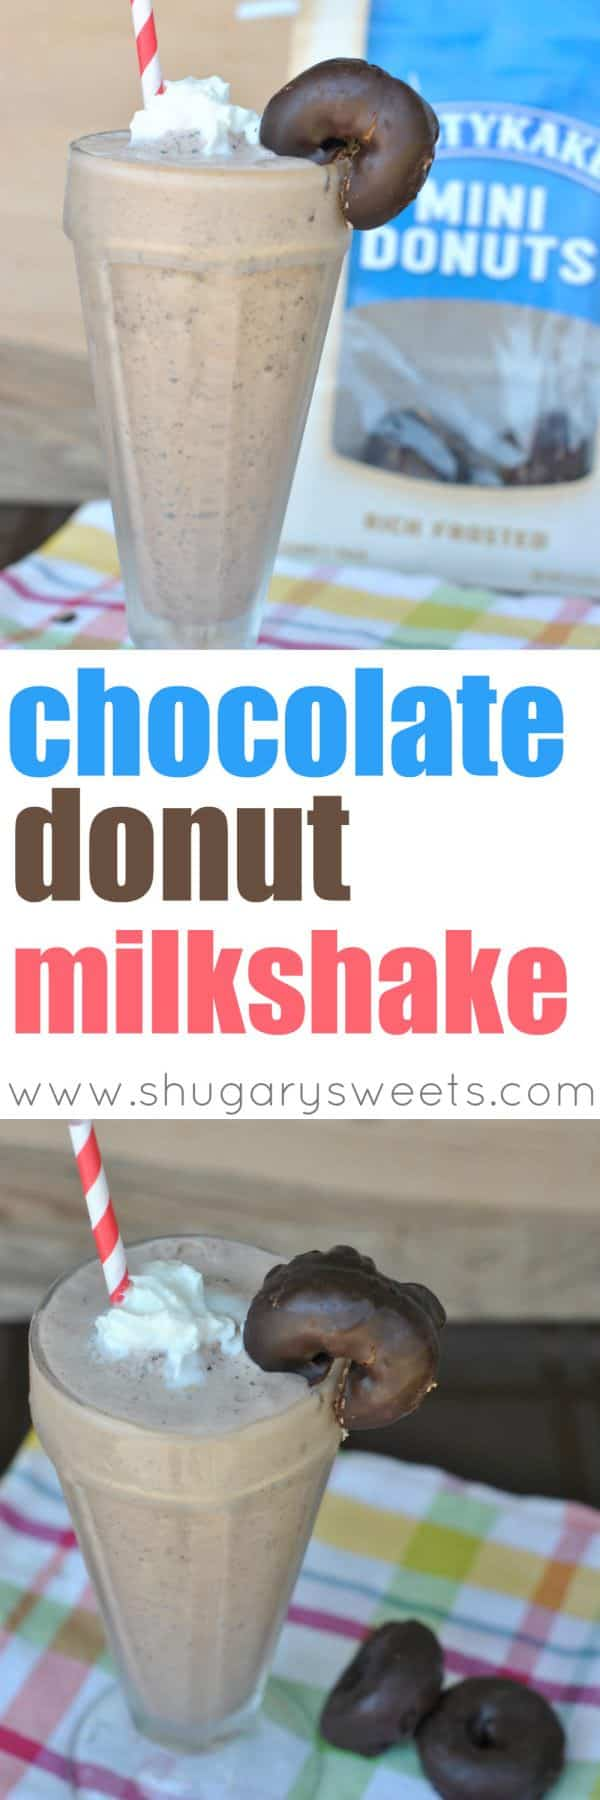 I've partnered with Tastykake to bring you a delicious Chocolate Donut Milkshake recipe. Perfect for the whole family, or a special treat for game day!